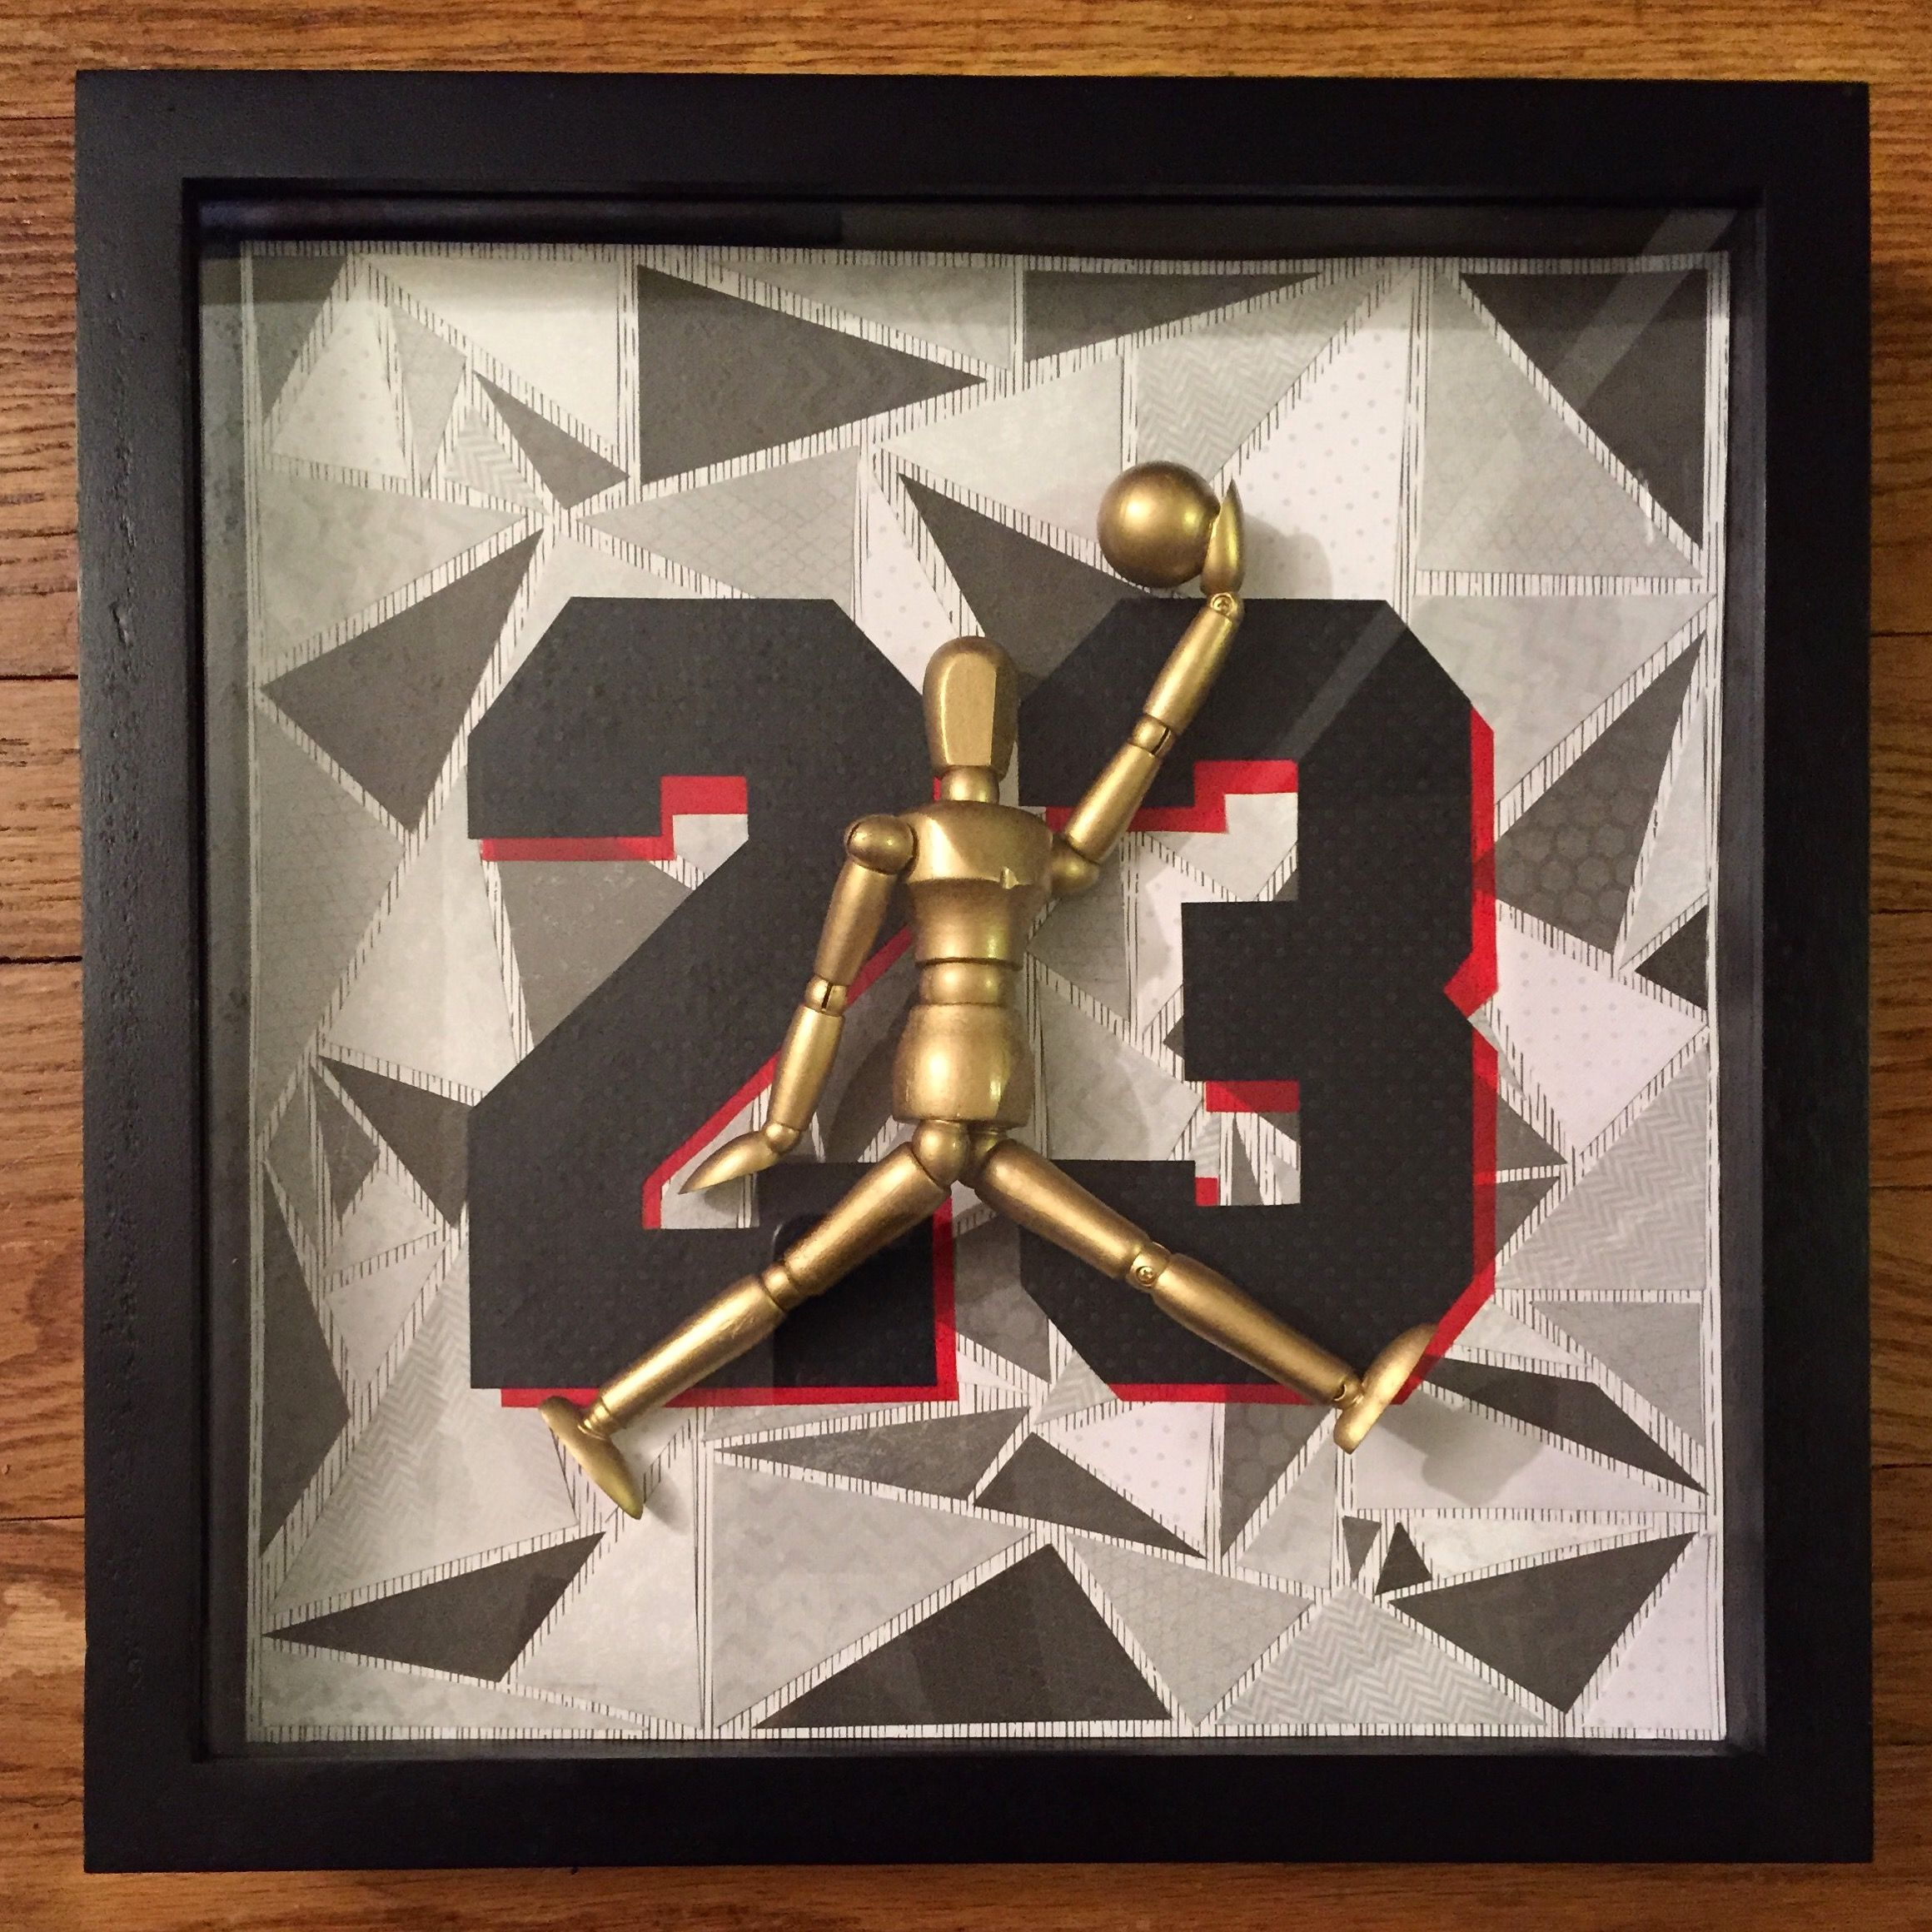 MJ III (12 x 12 shadow box frame) by J.Marie ($55.00) | Handmade ...